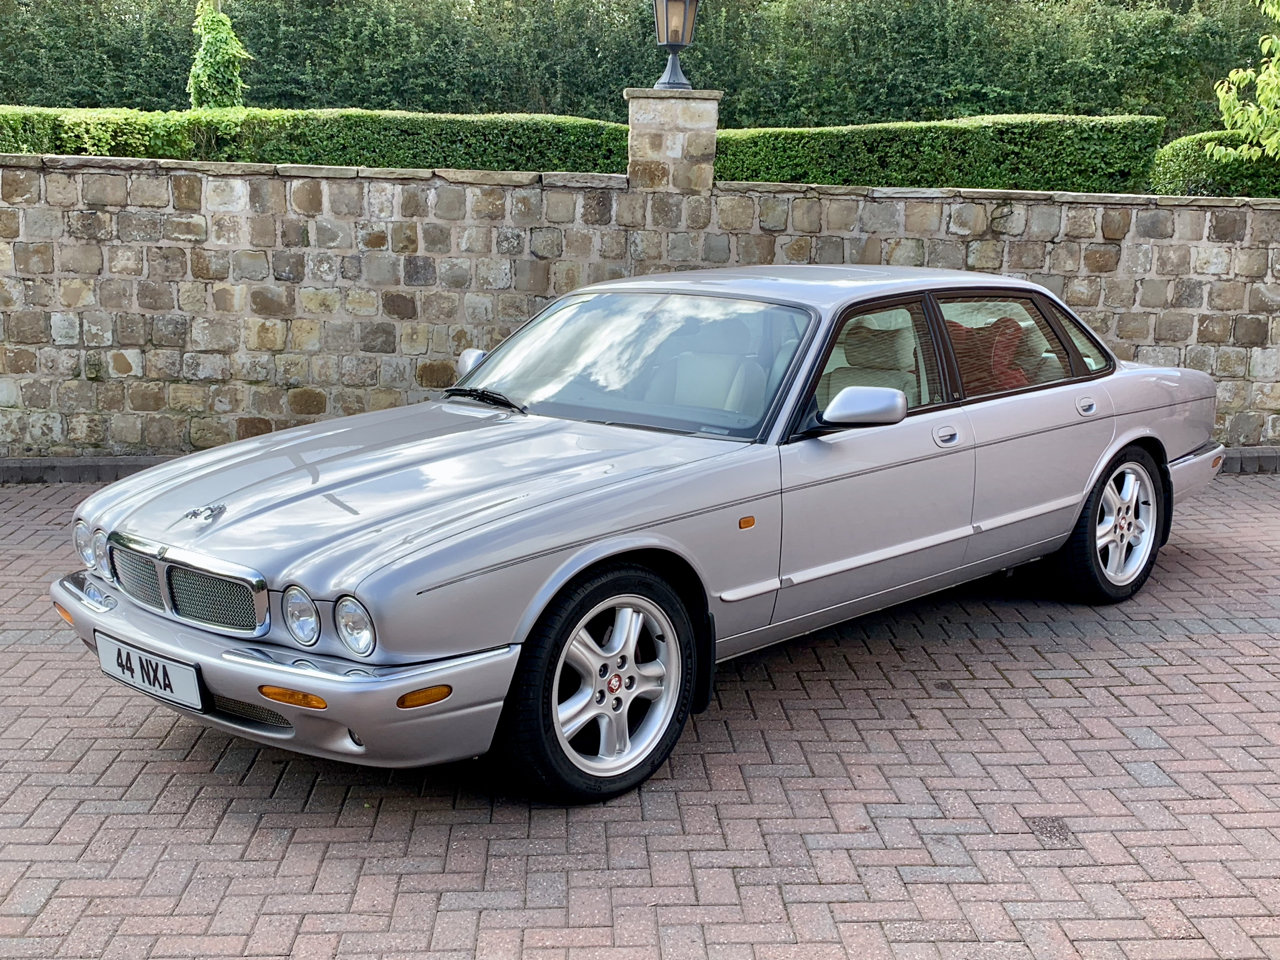 2002 Jag XJ8 4.0 V8 Sport - Swap Rolls or Classic Car For Sale (picture 1 of 6)